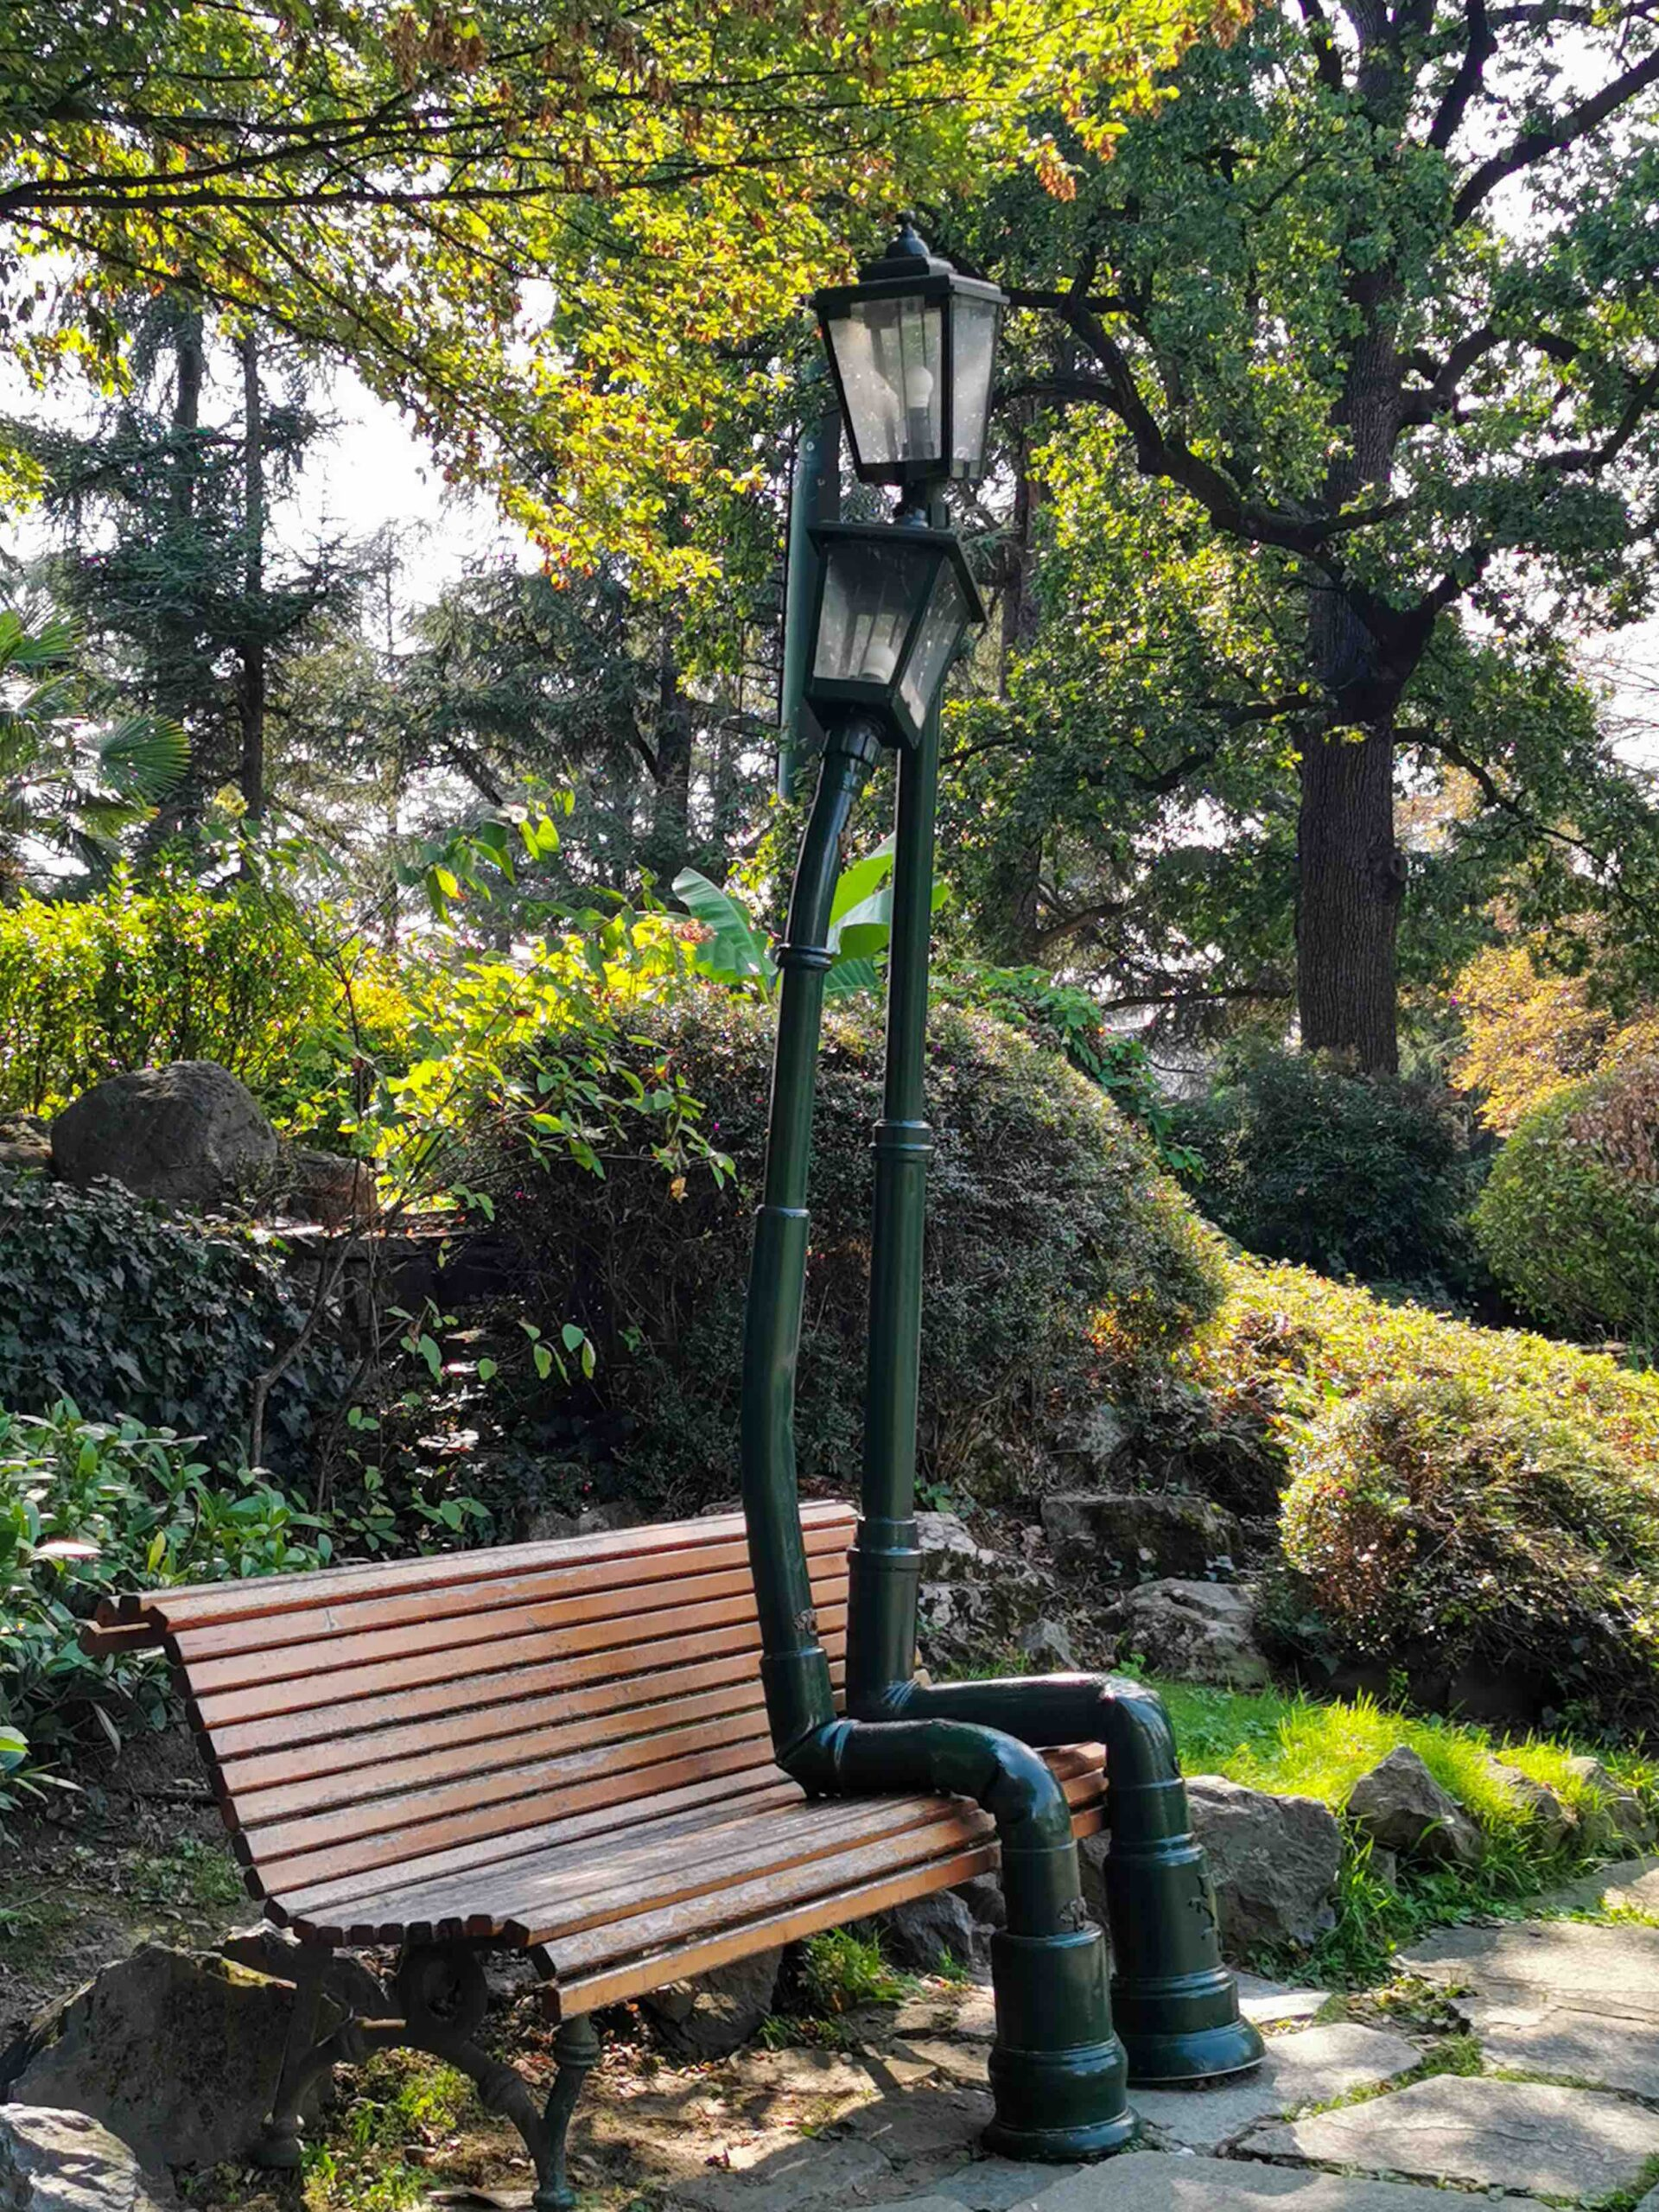 The romantic bench with two street lamps hugging each other inside the Valentino Park's rock garden in Turin